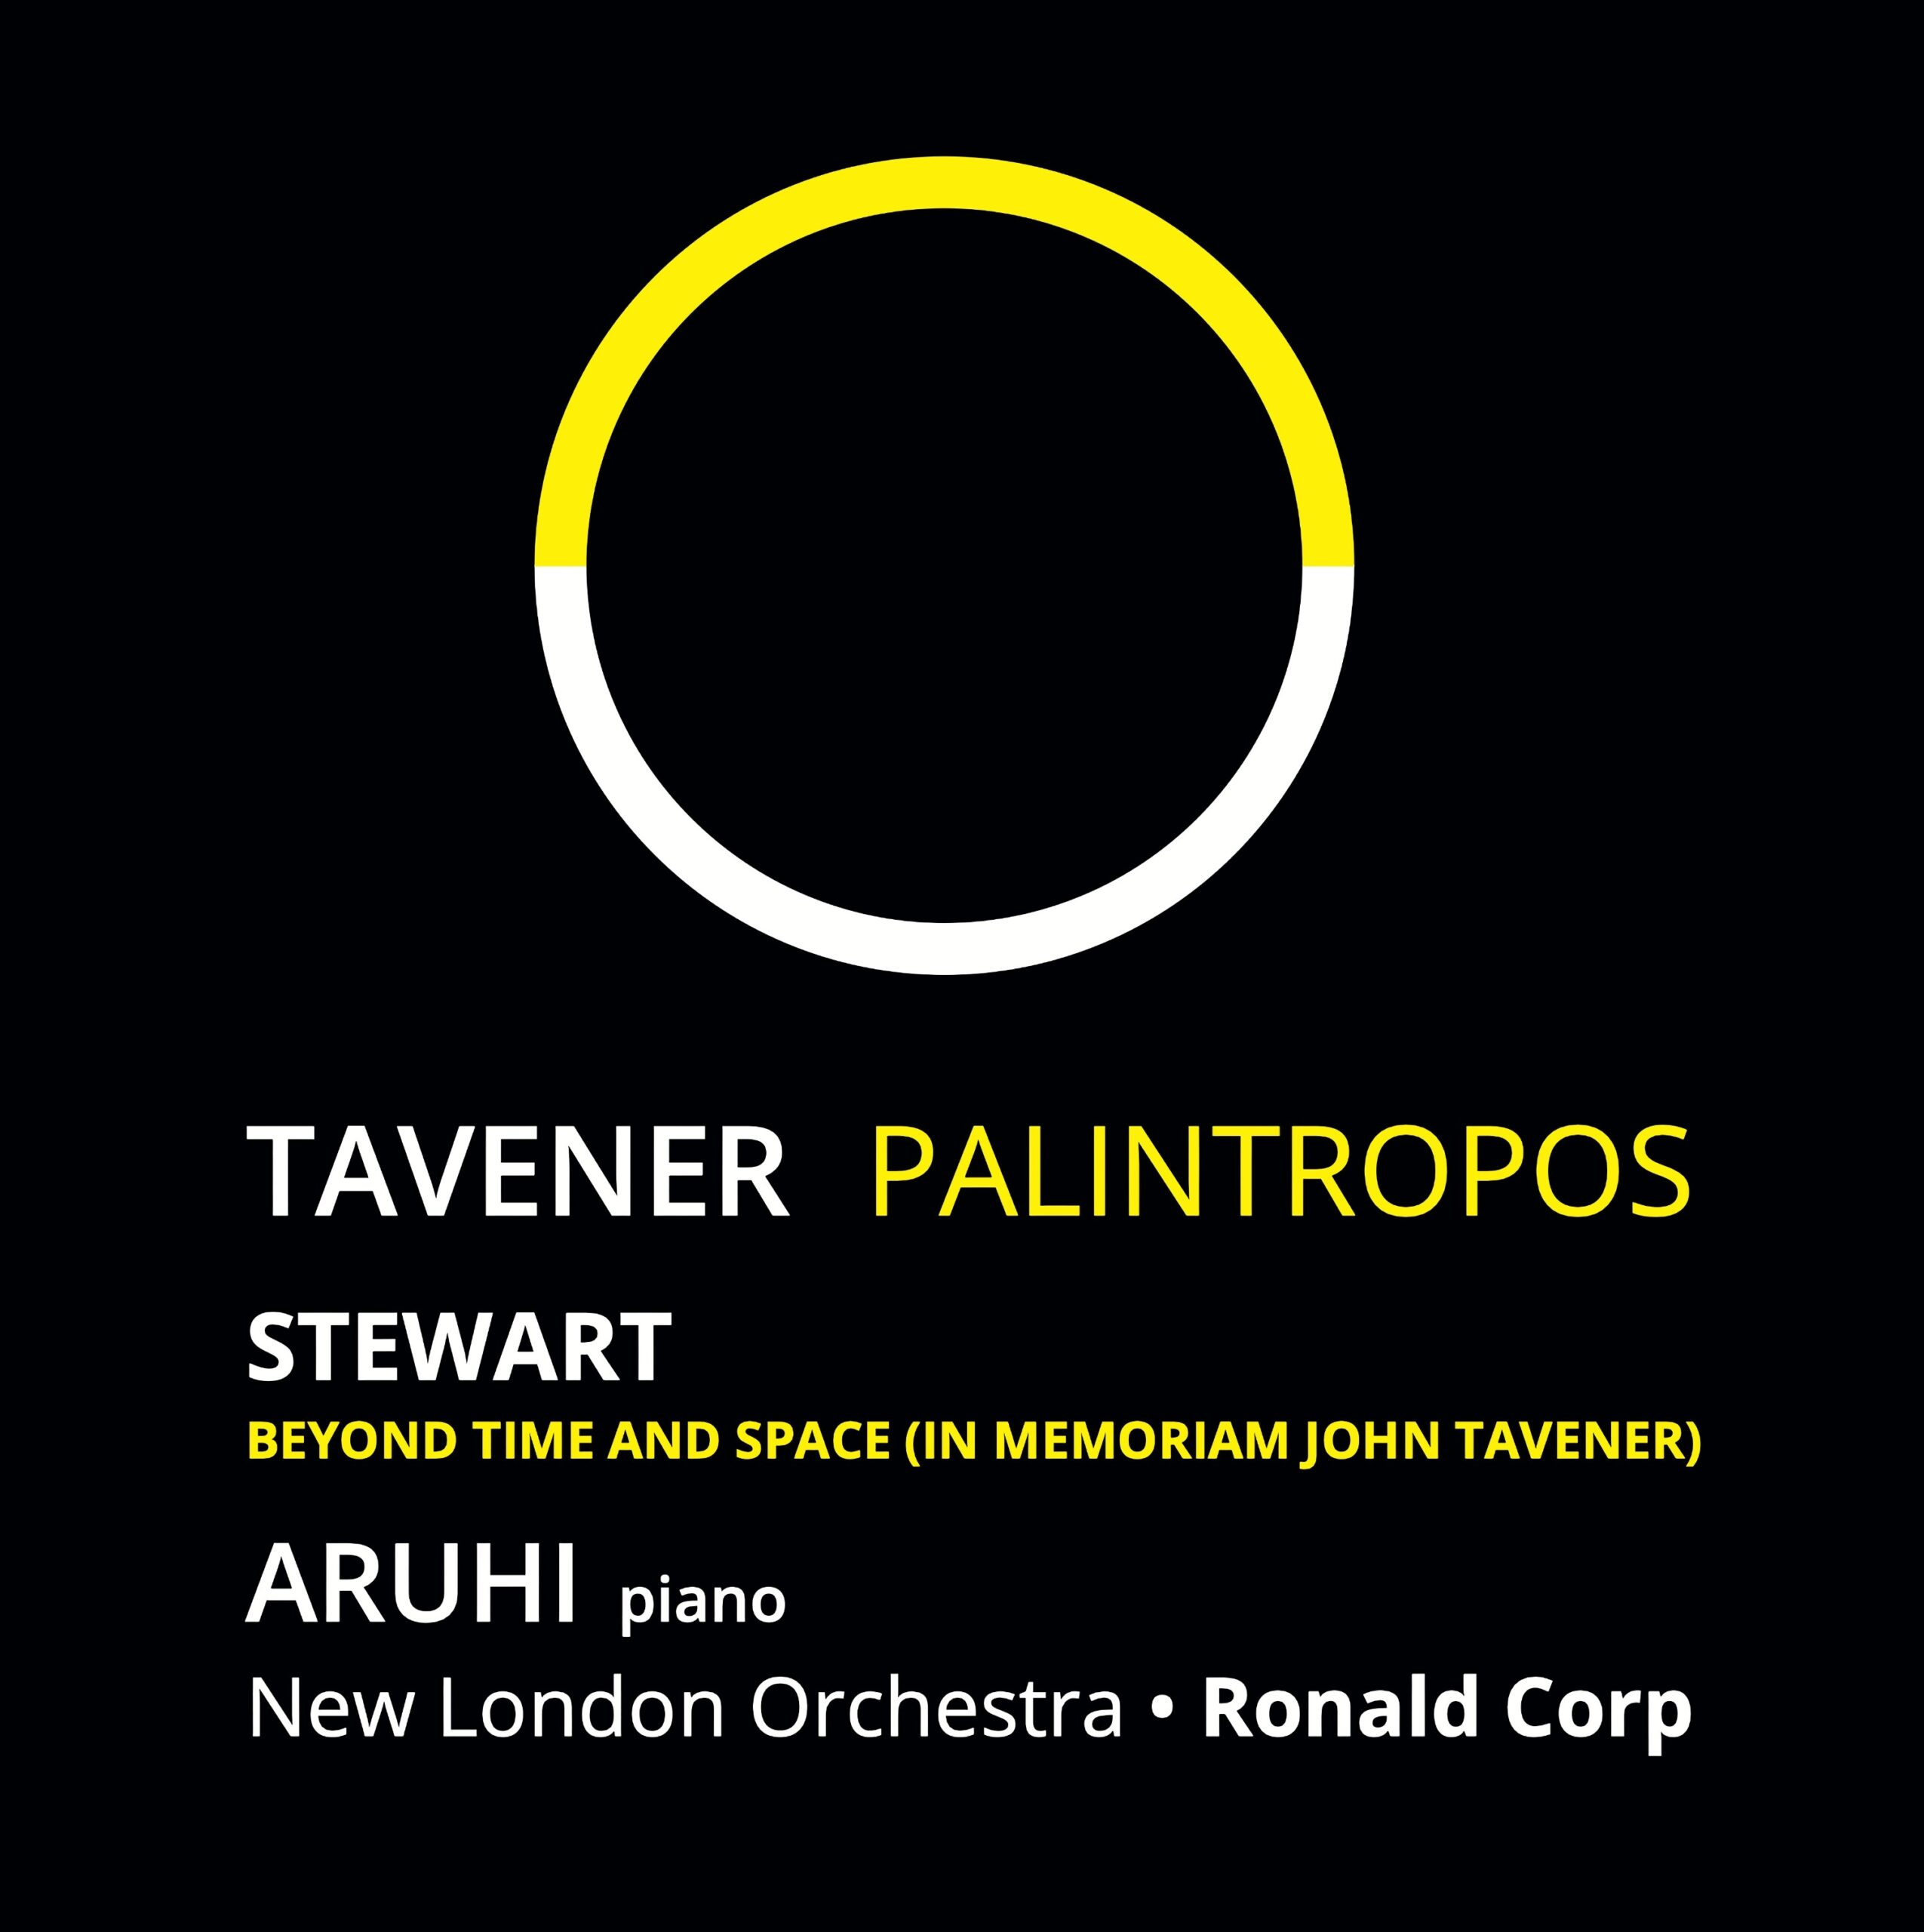 John Tavener 'Palintropos' for piano and orchestra.